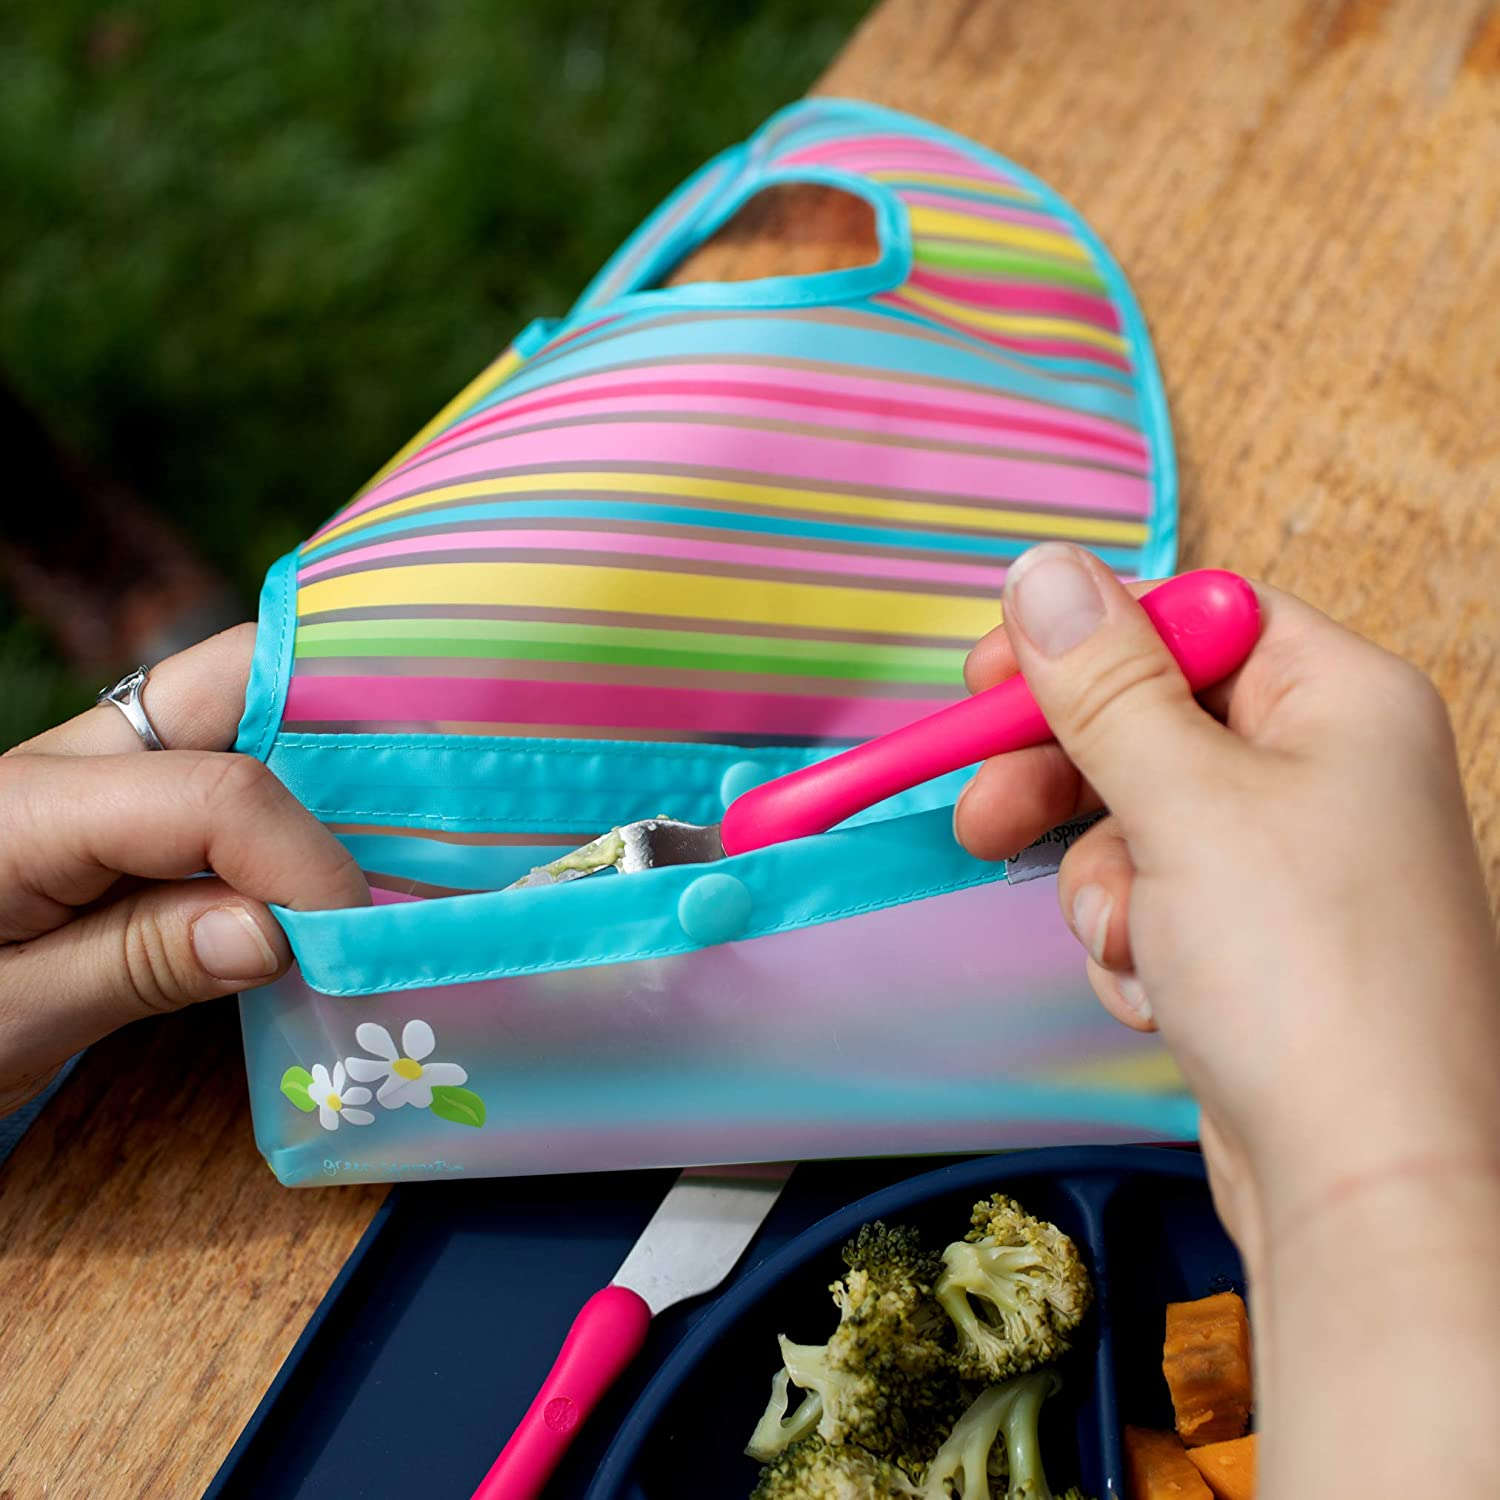 Flipped pocket stays extended to catch spills Neatly rolls up for mess and utensil storage Easy clean |  Waterproof protection for messy eaters green sprouts Snap /& Go Wipe-off Bibs 3 pk